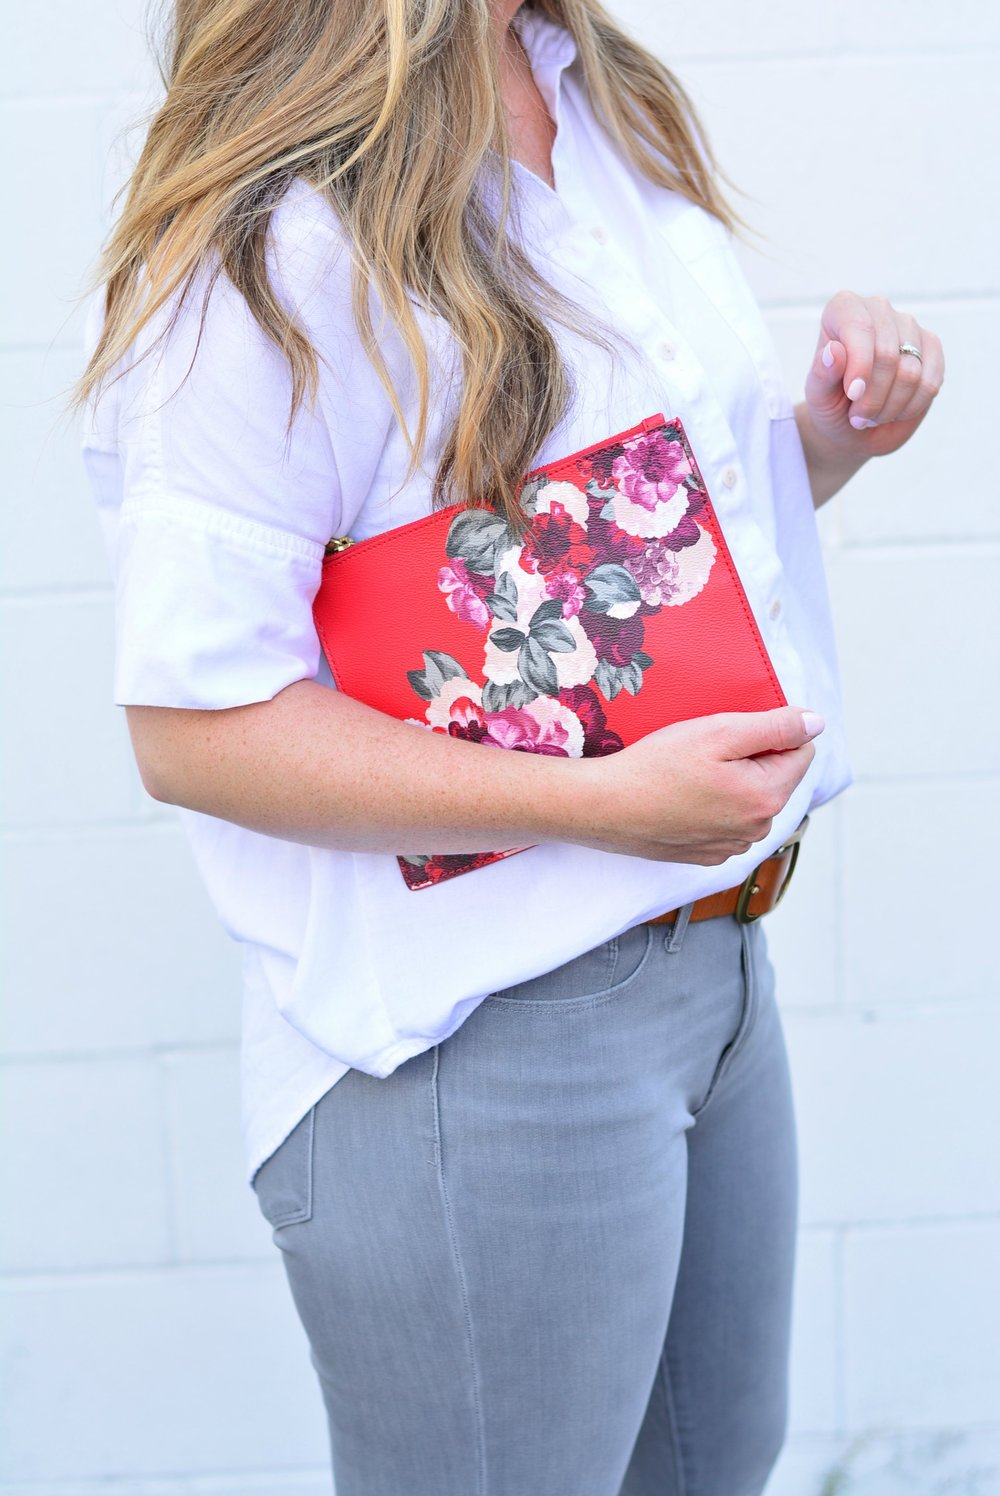 Floral banana clutch